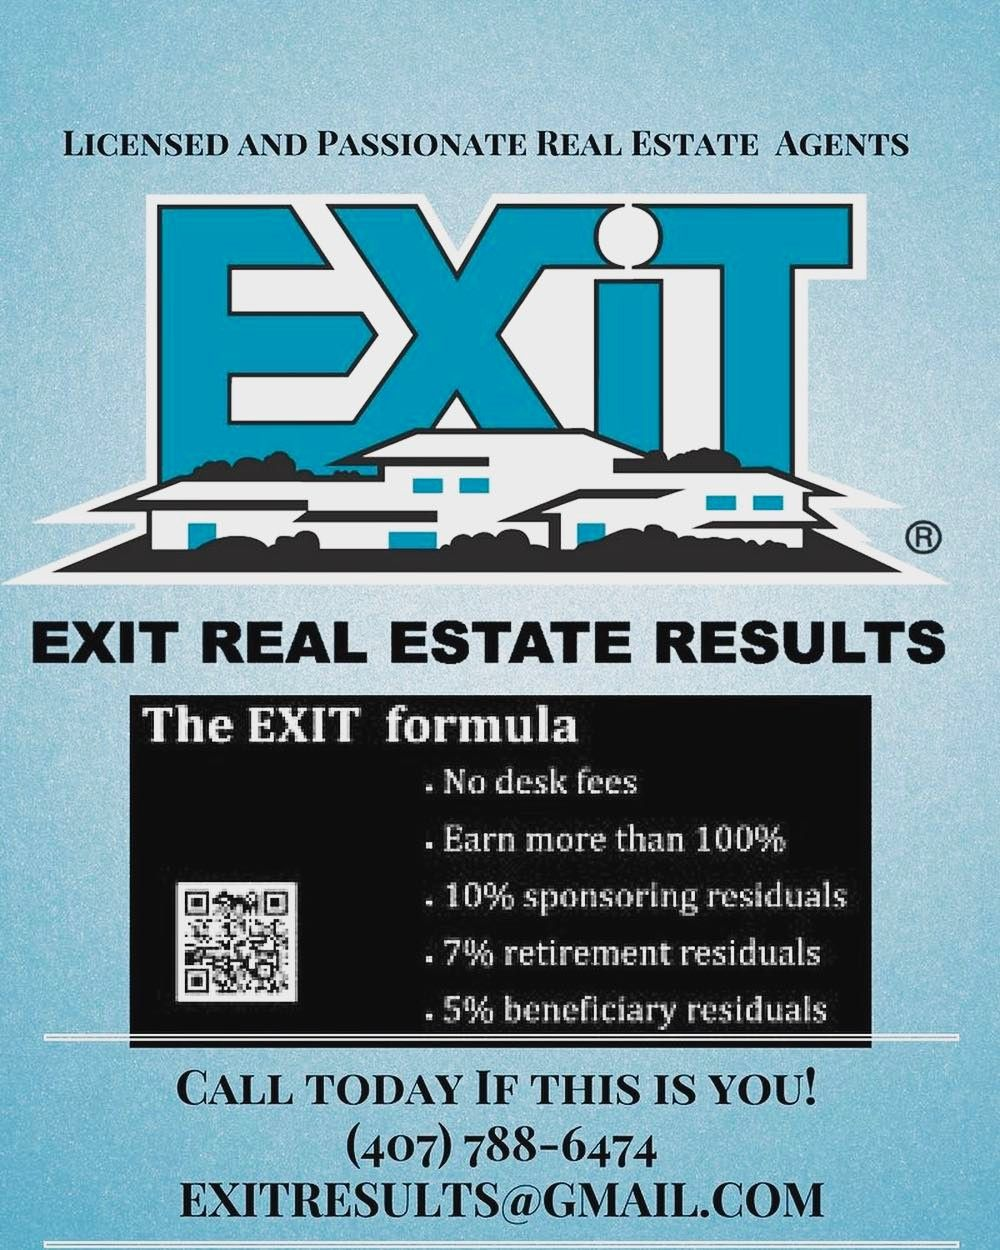 Are You Ready For That Career Change We Are Hiring Loveexit Exitrealestateresults Thinkresiduals Realestate Real Estate Agent We Are Hiring Career Change